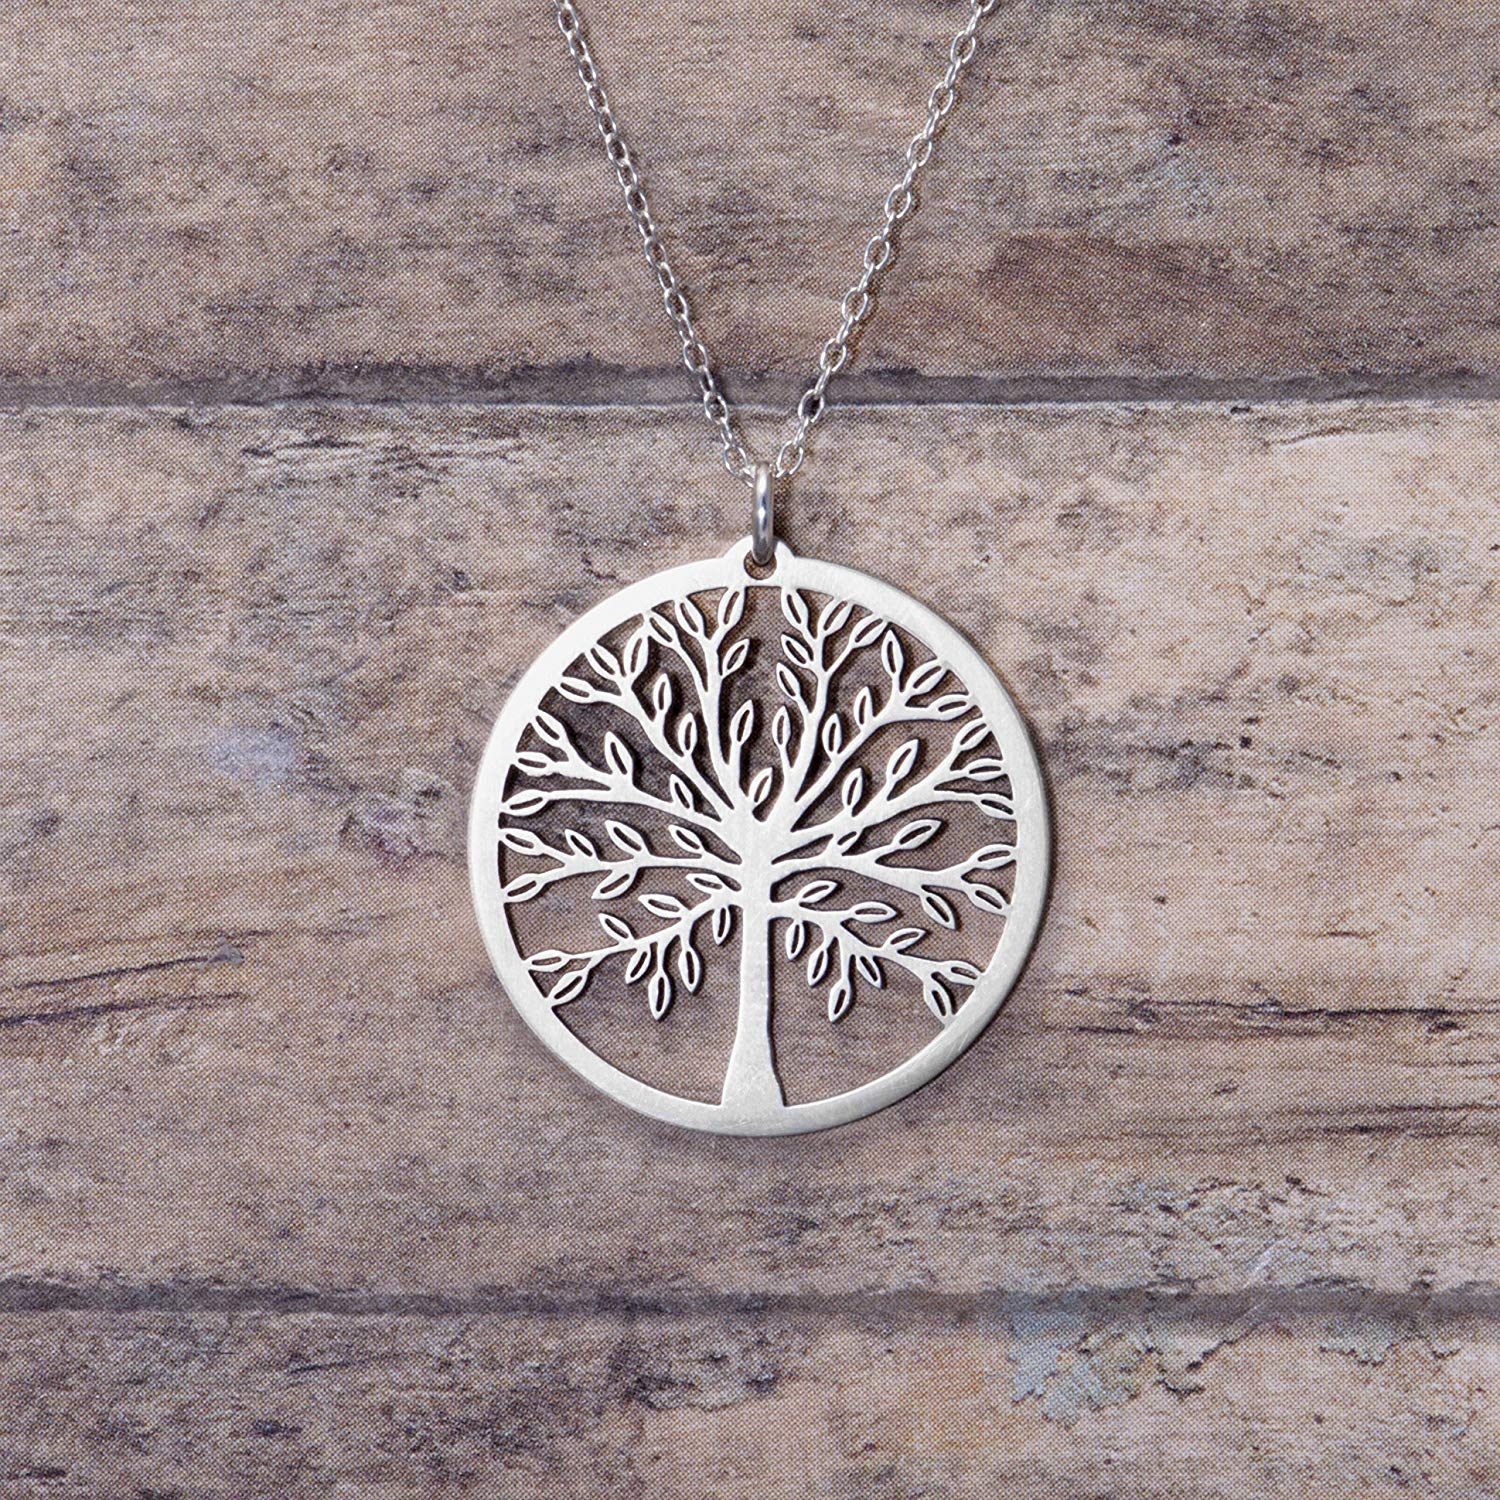 Silver Plated Forever in My Heart Hollow Pendant Necklace Elegant Jewellery Gifts for Women 45cm Necklace Chain Silver Morenitor Tree of Life Necklace